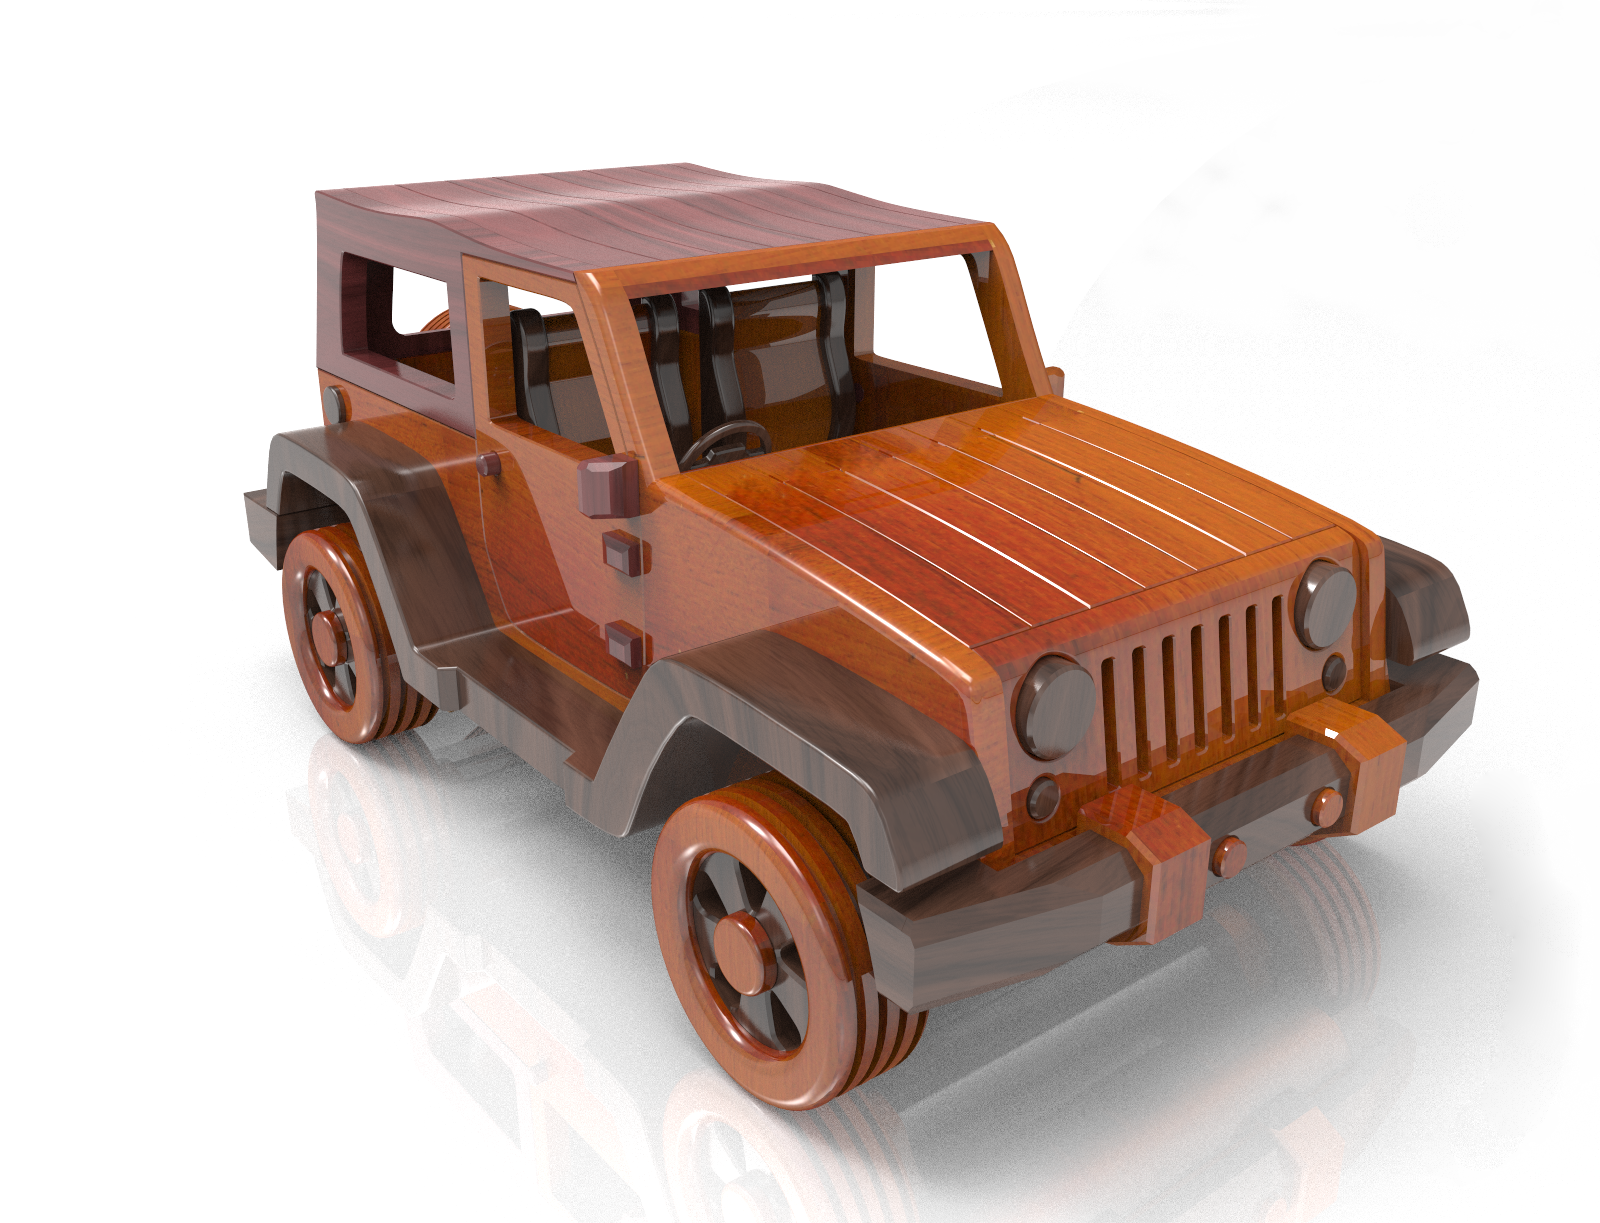 Jeep car toys  Pin by Brenda Lawson on Crafts  Pinterest  Wood toys Jeeps and Toy